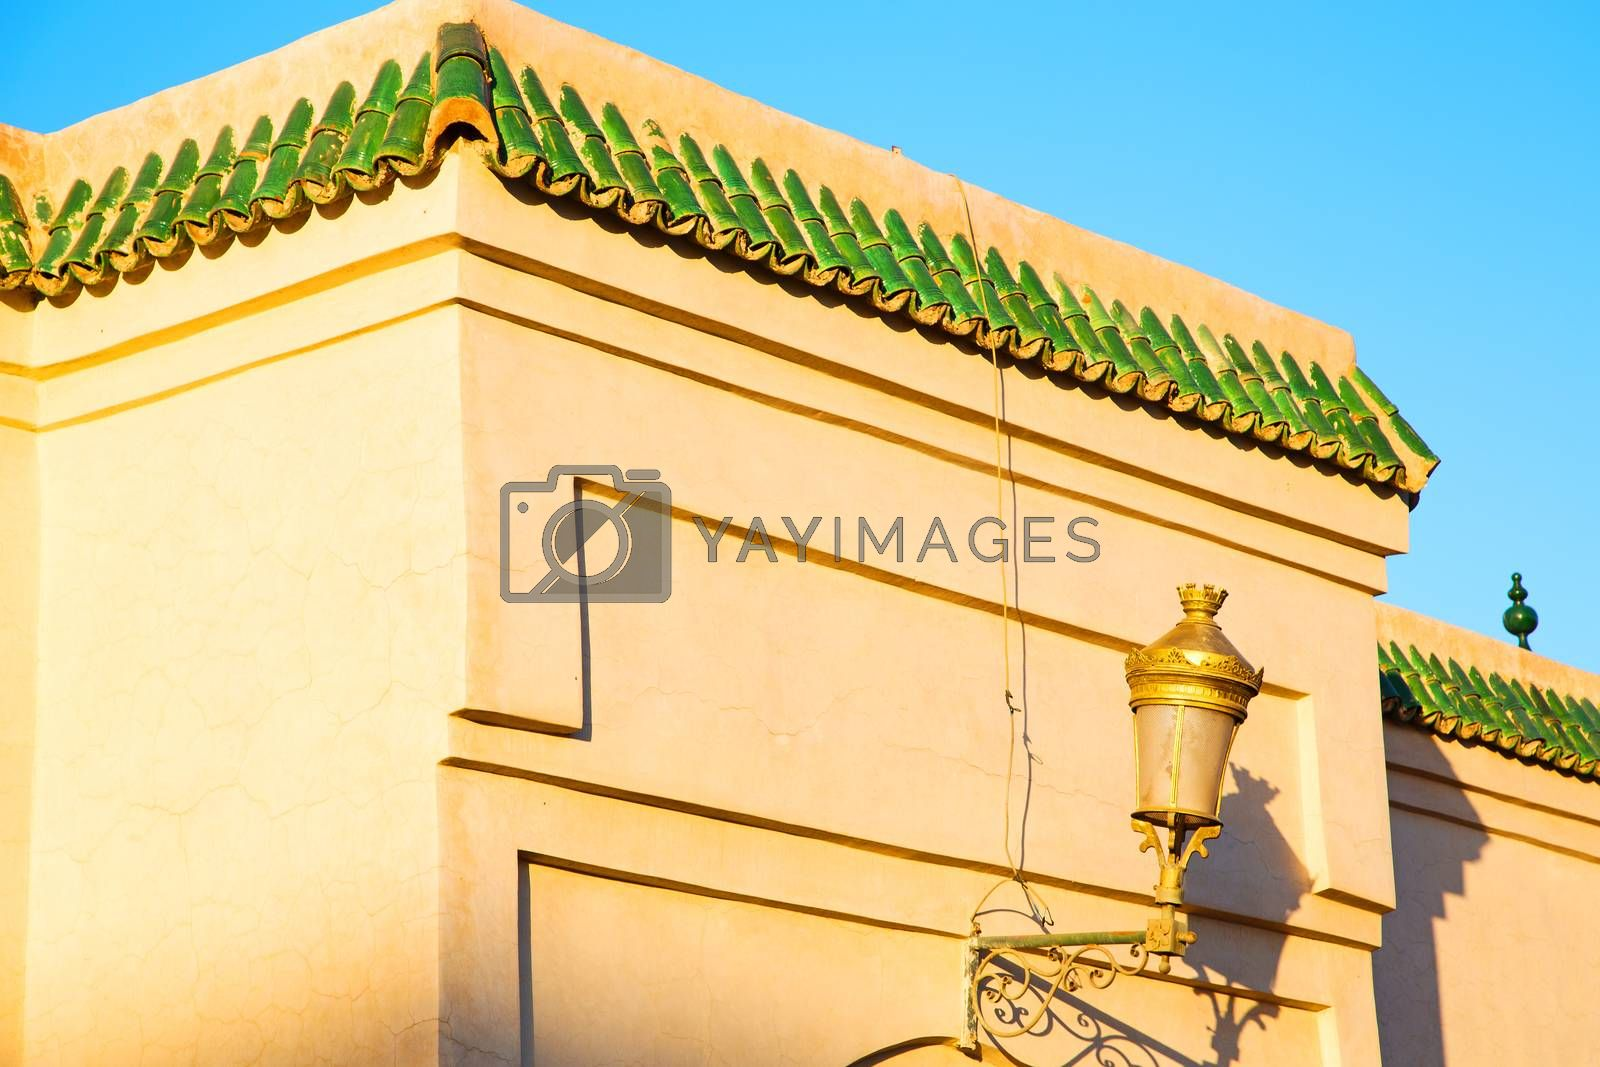 Royalty free image of tile roof  moroccan old wall and brick   by lkpro